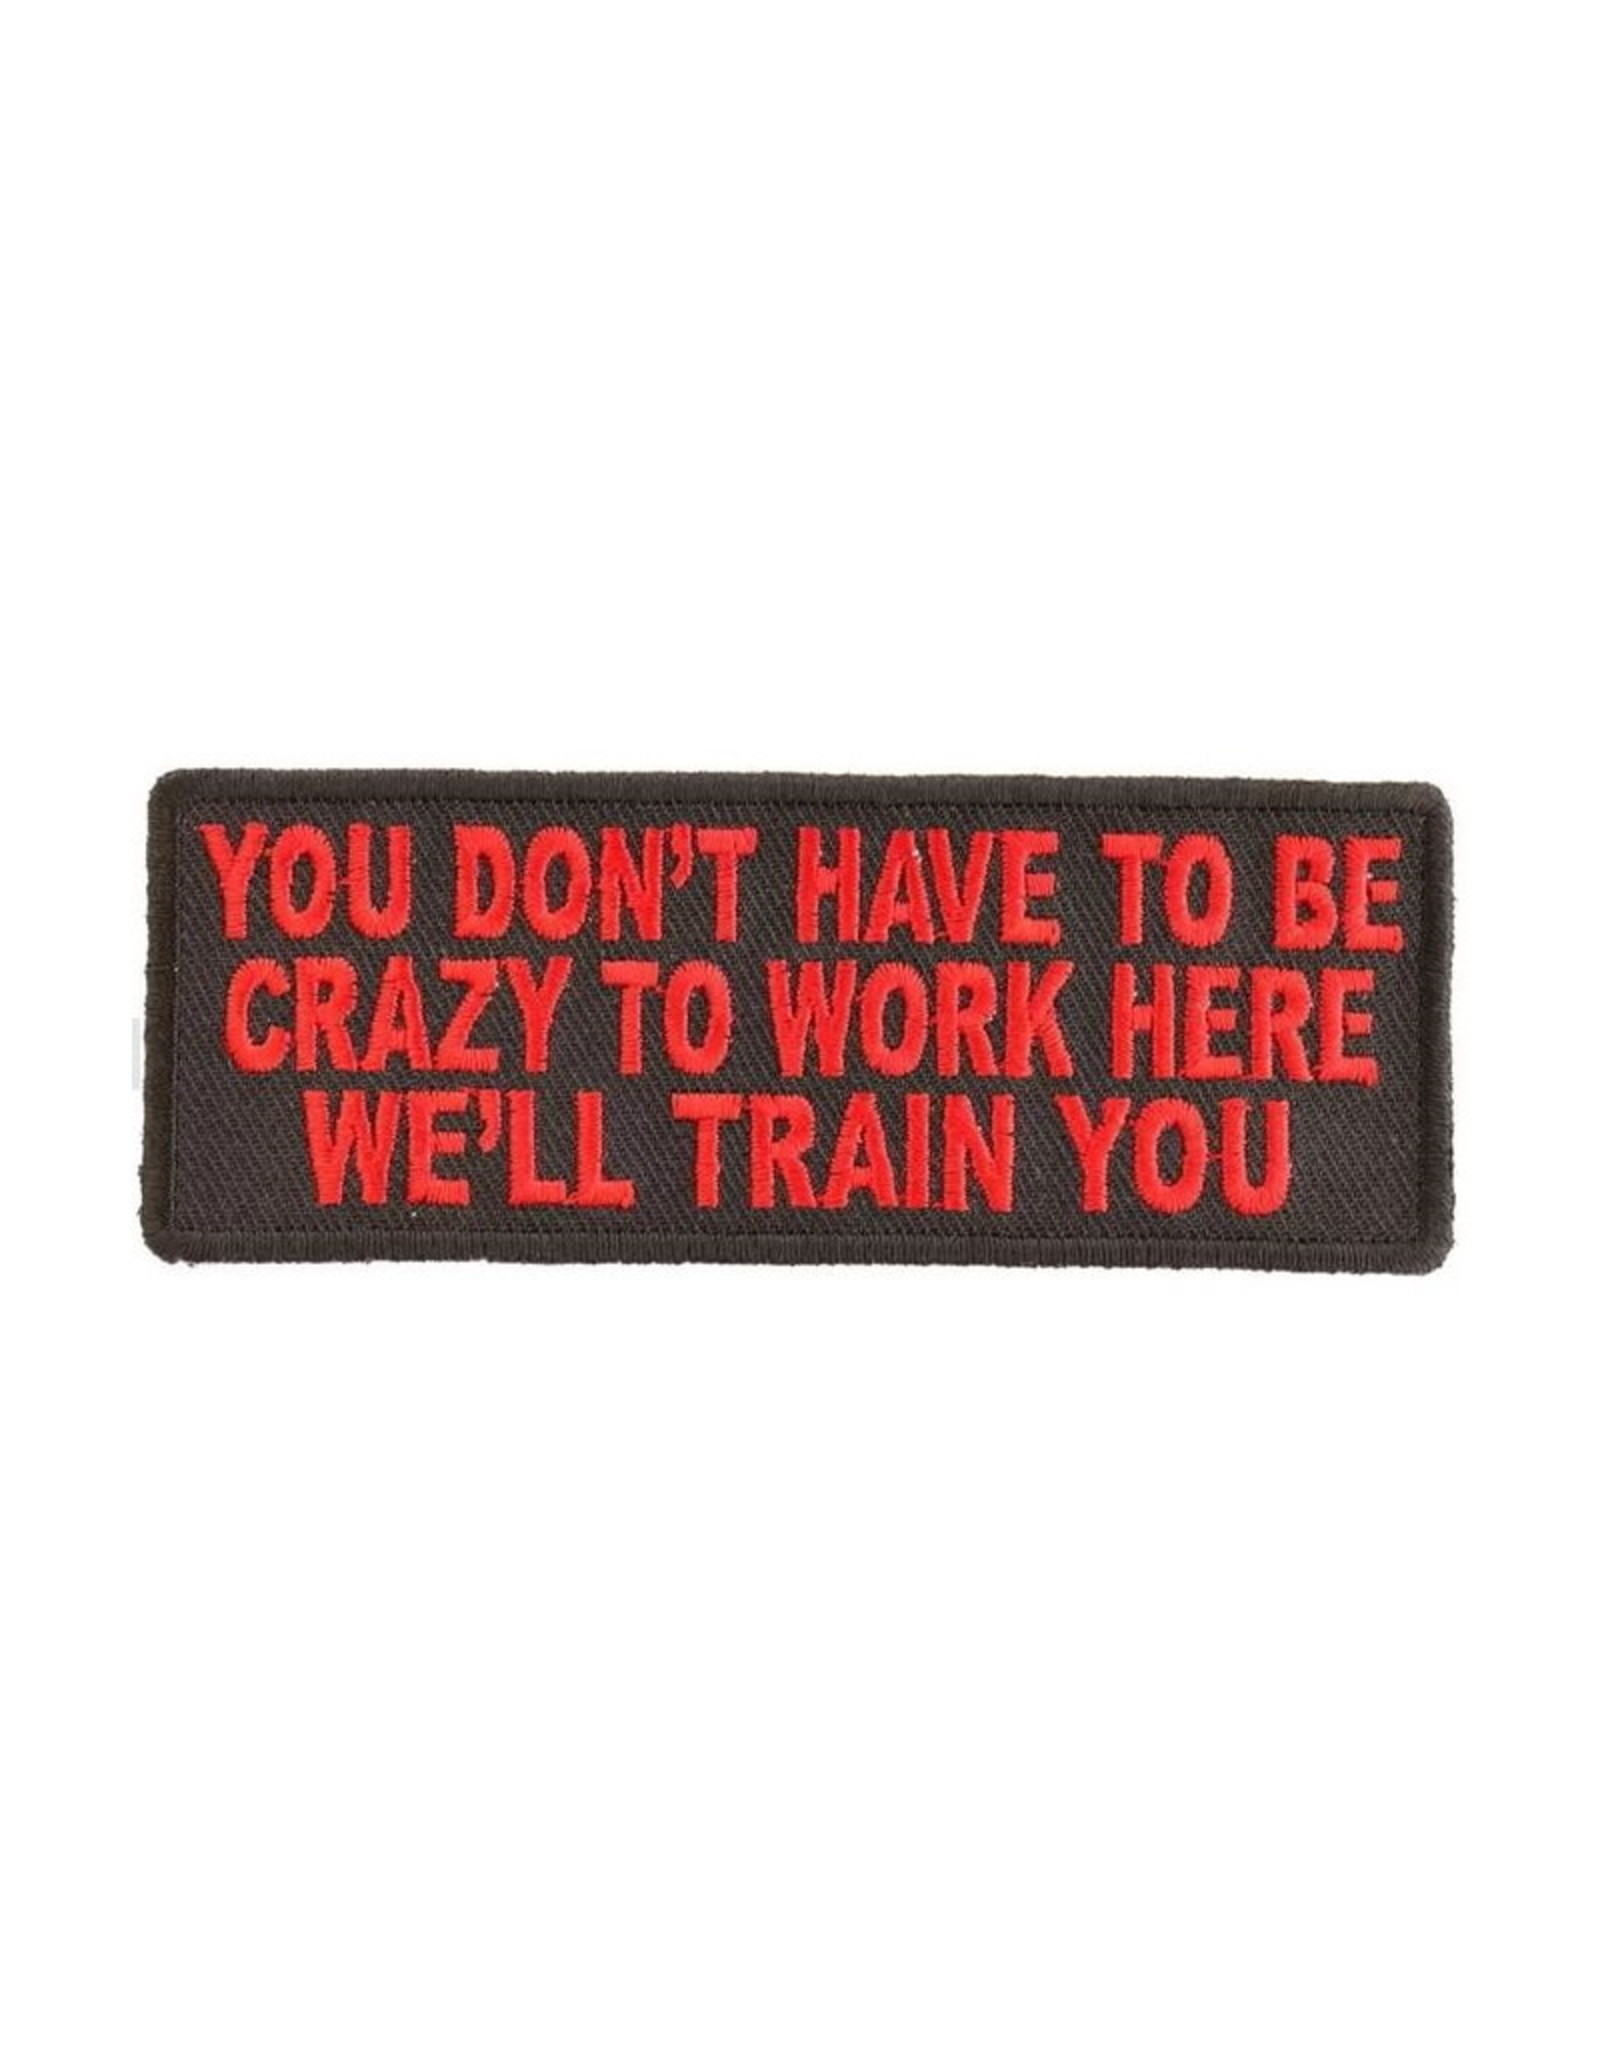 "MidMil Embroidered You don't have to be crazy to work here, we'll train you Patch 4"" wide x 1.5"" high Black"